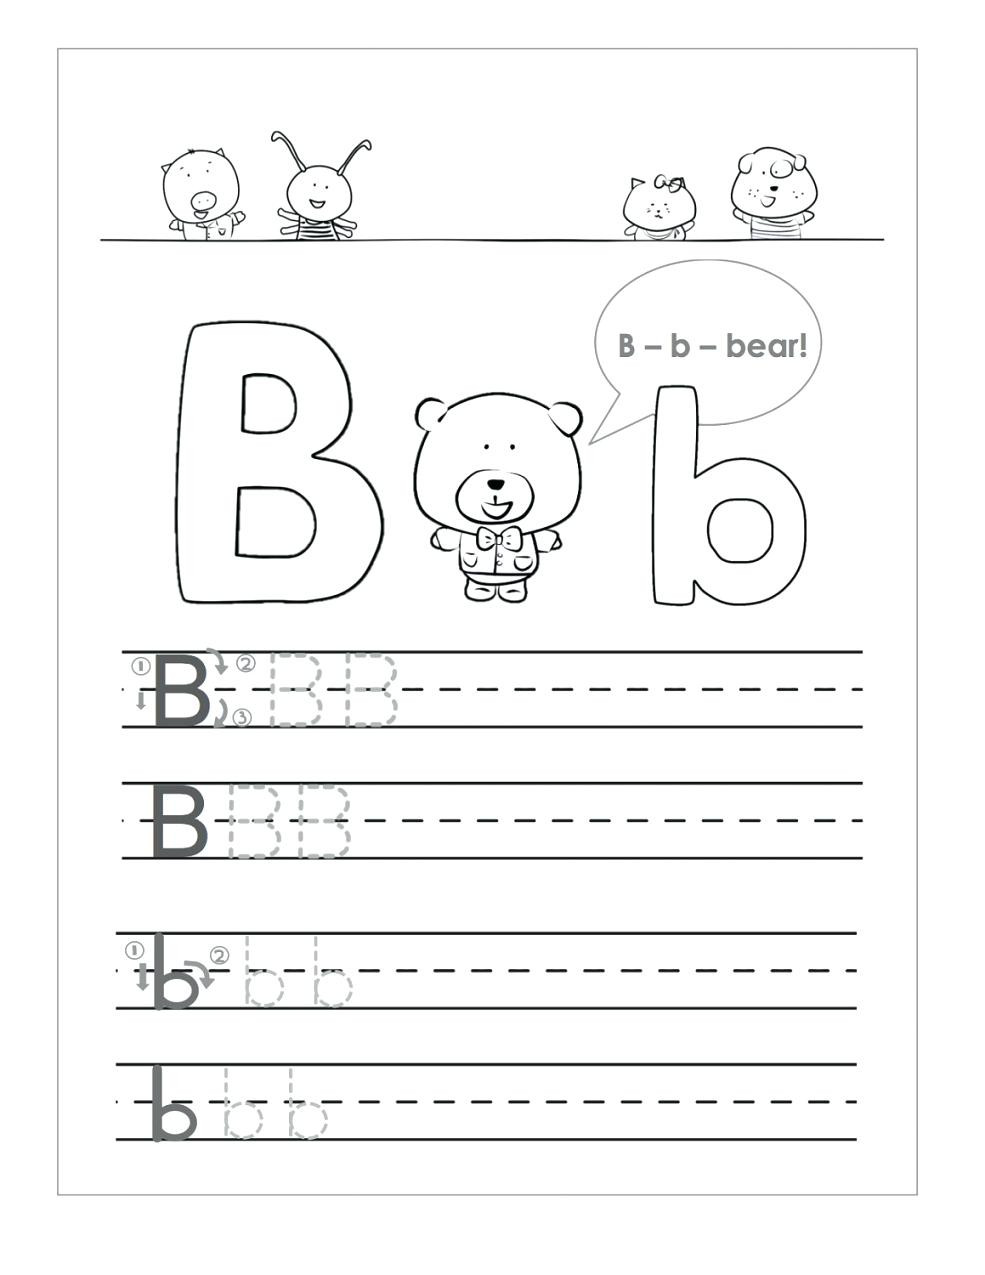 Letter B Worksheets Kindergarten Letter B Worksheets to Learning Letter B Worksheets